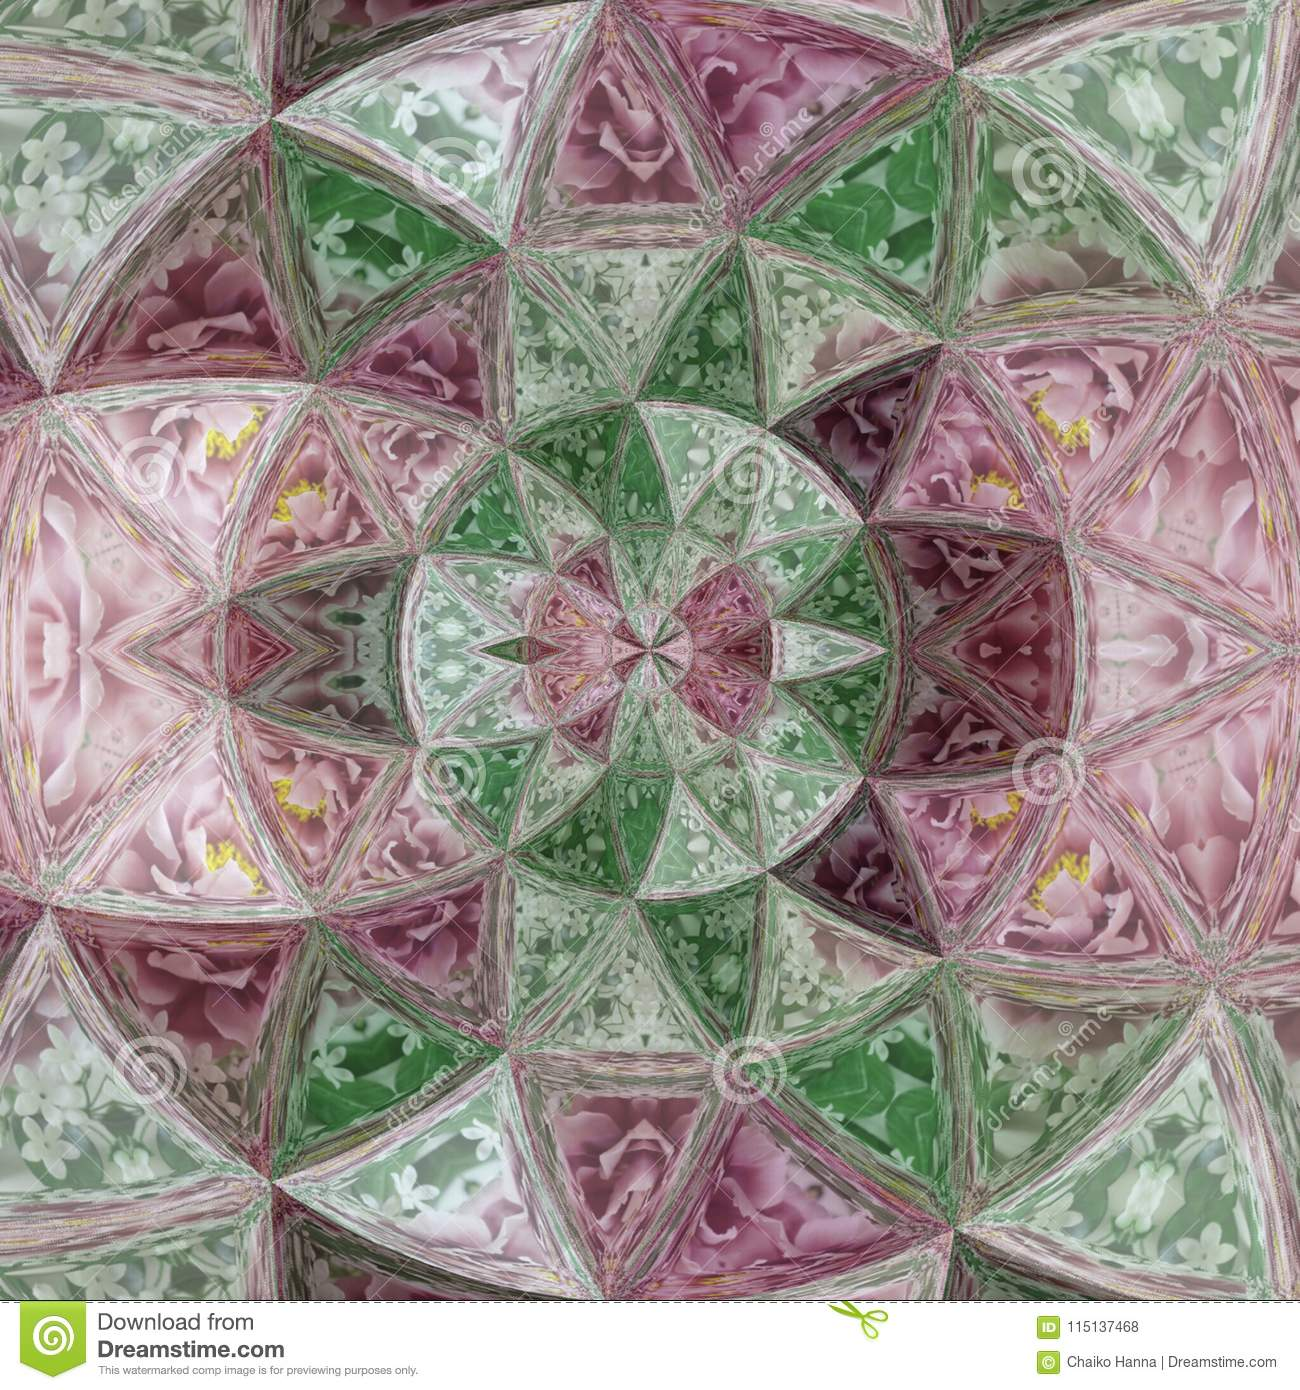 Ultra violet glass quartz effect rose of wind stained glass, colorful mosaic tile pattern in violet, green and white